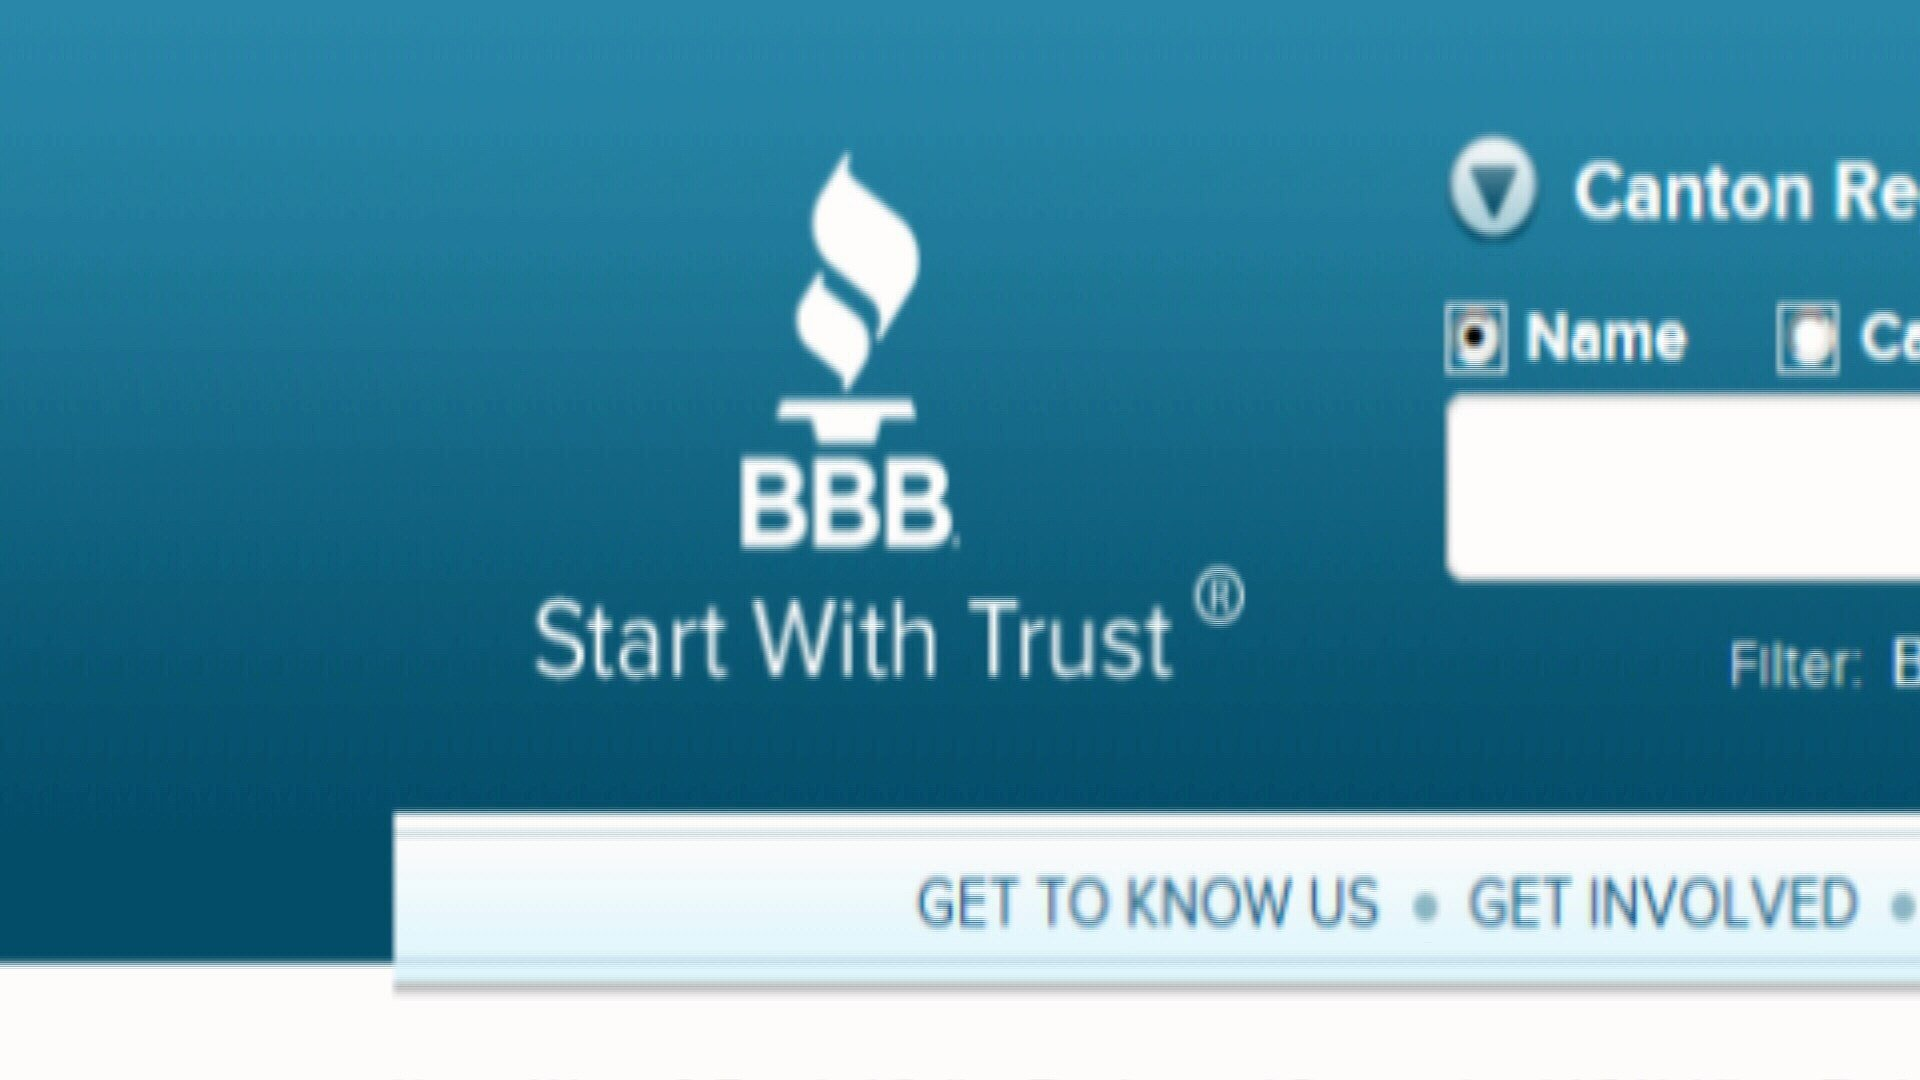 The following online survey companies bear the following BBB seals: